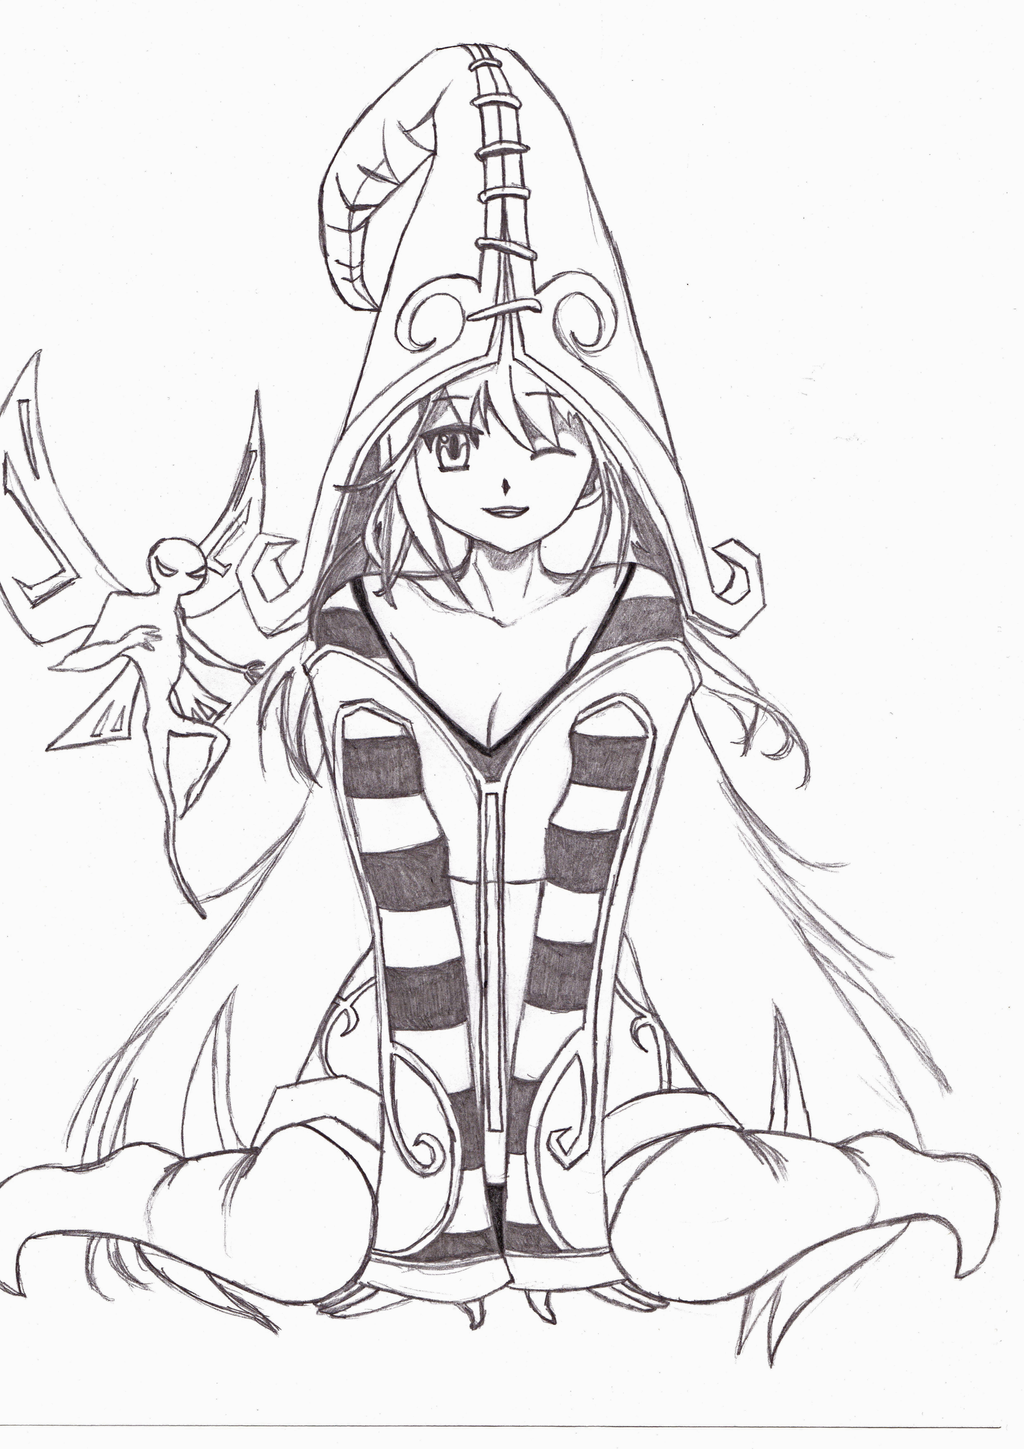 League of legends lulu sketch by ruledragon on deviantart for League of legends coloring pages